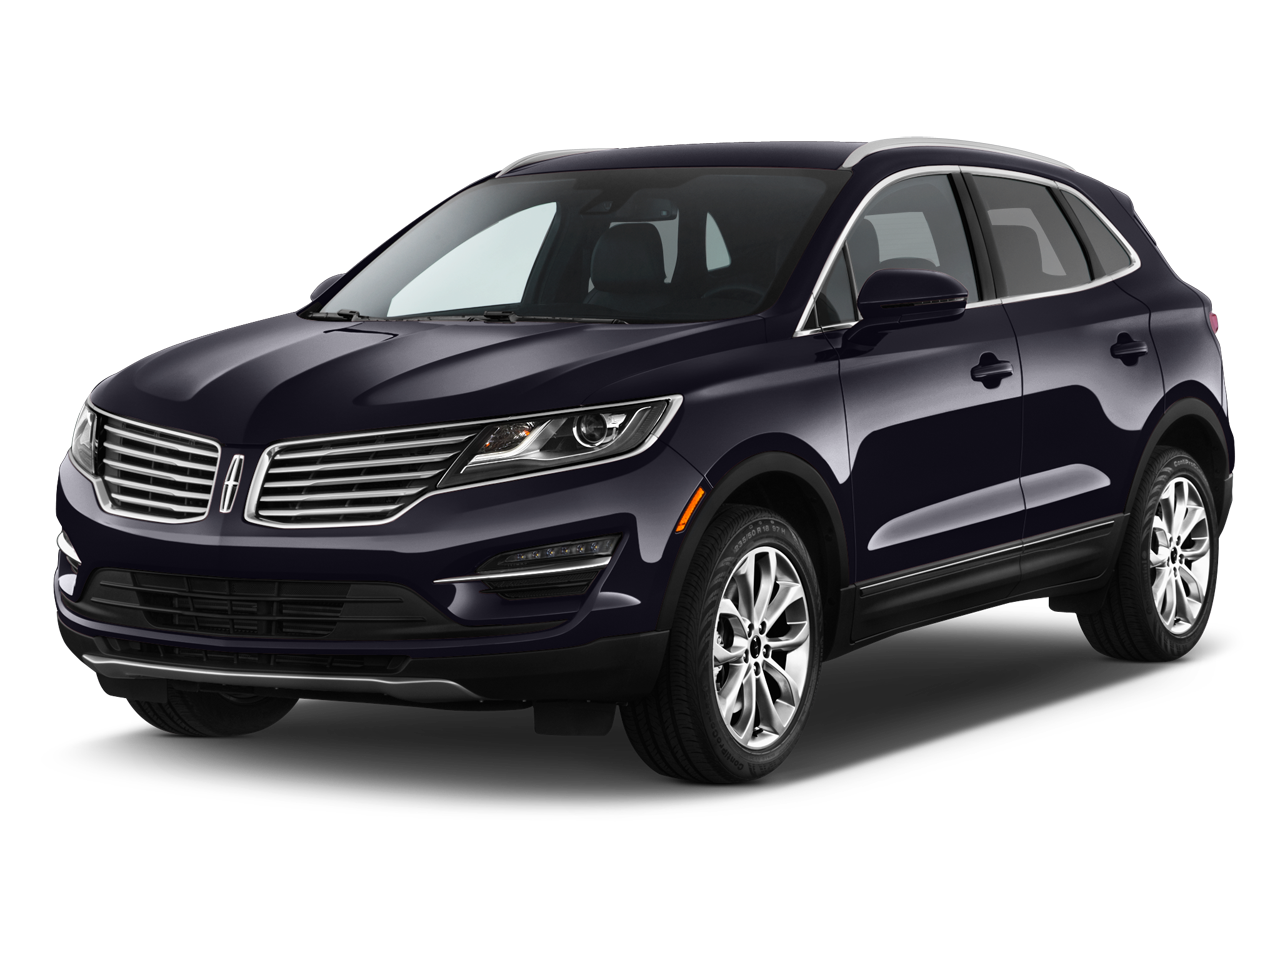 new black lincoln mkc for sale randy wise auto. Black Bedroom Furniture Sets. Home Design Ideas